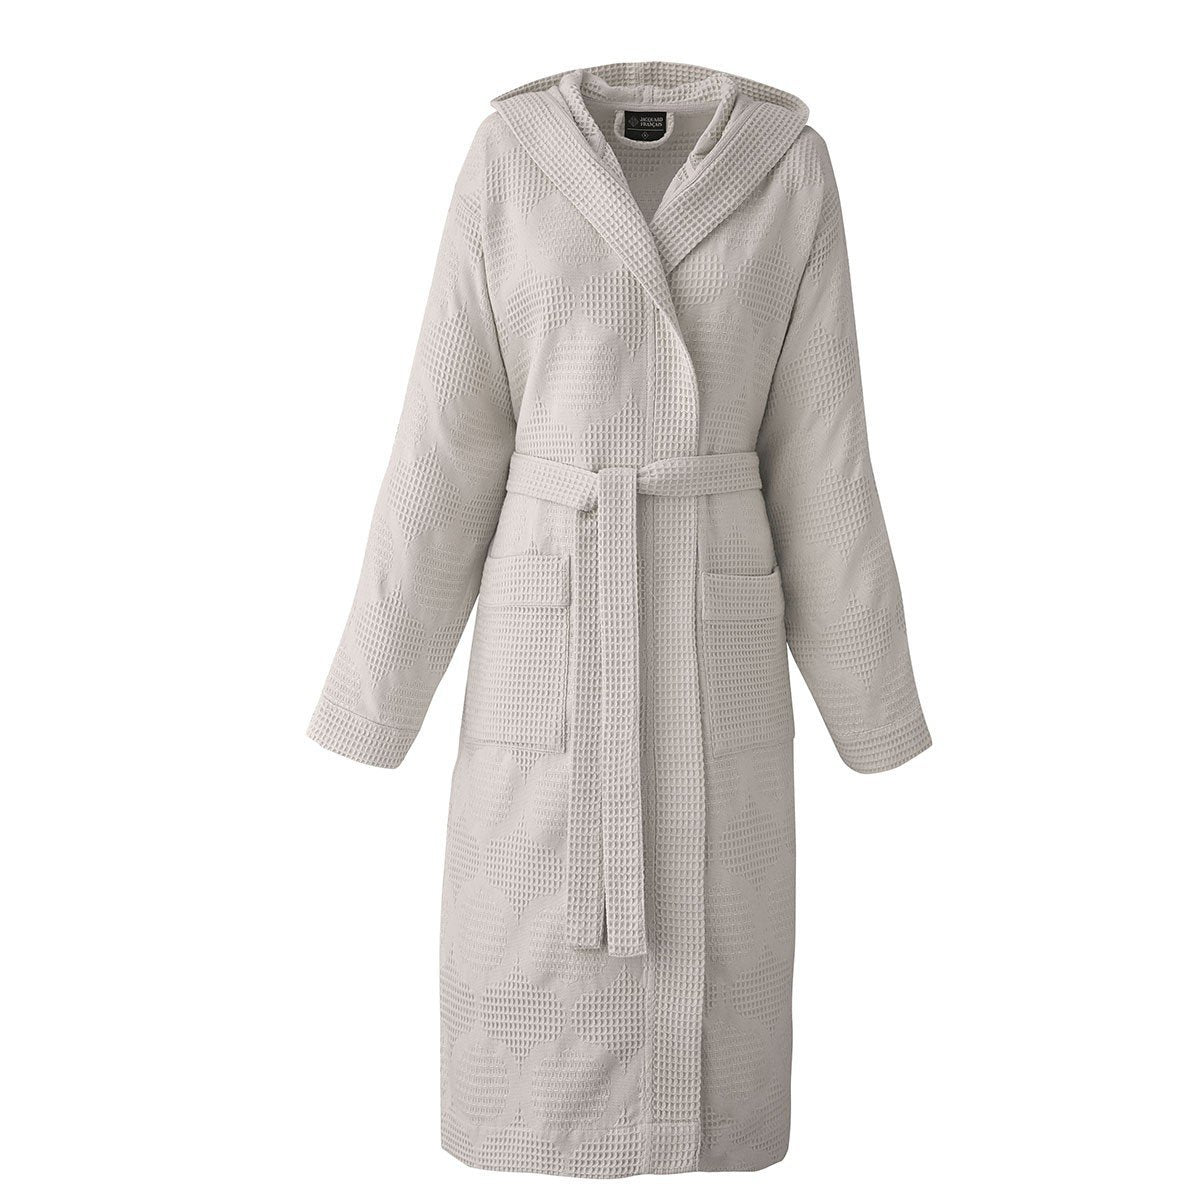 Hera Brown Bathrobe by Le Jacquard Français | Fig Linens - Hooded bath robe, pockets, belt